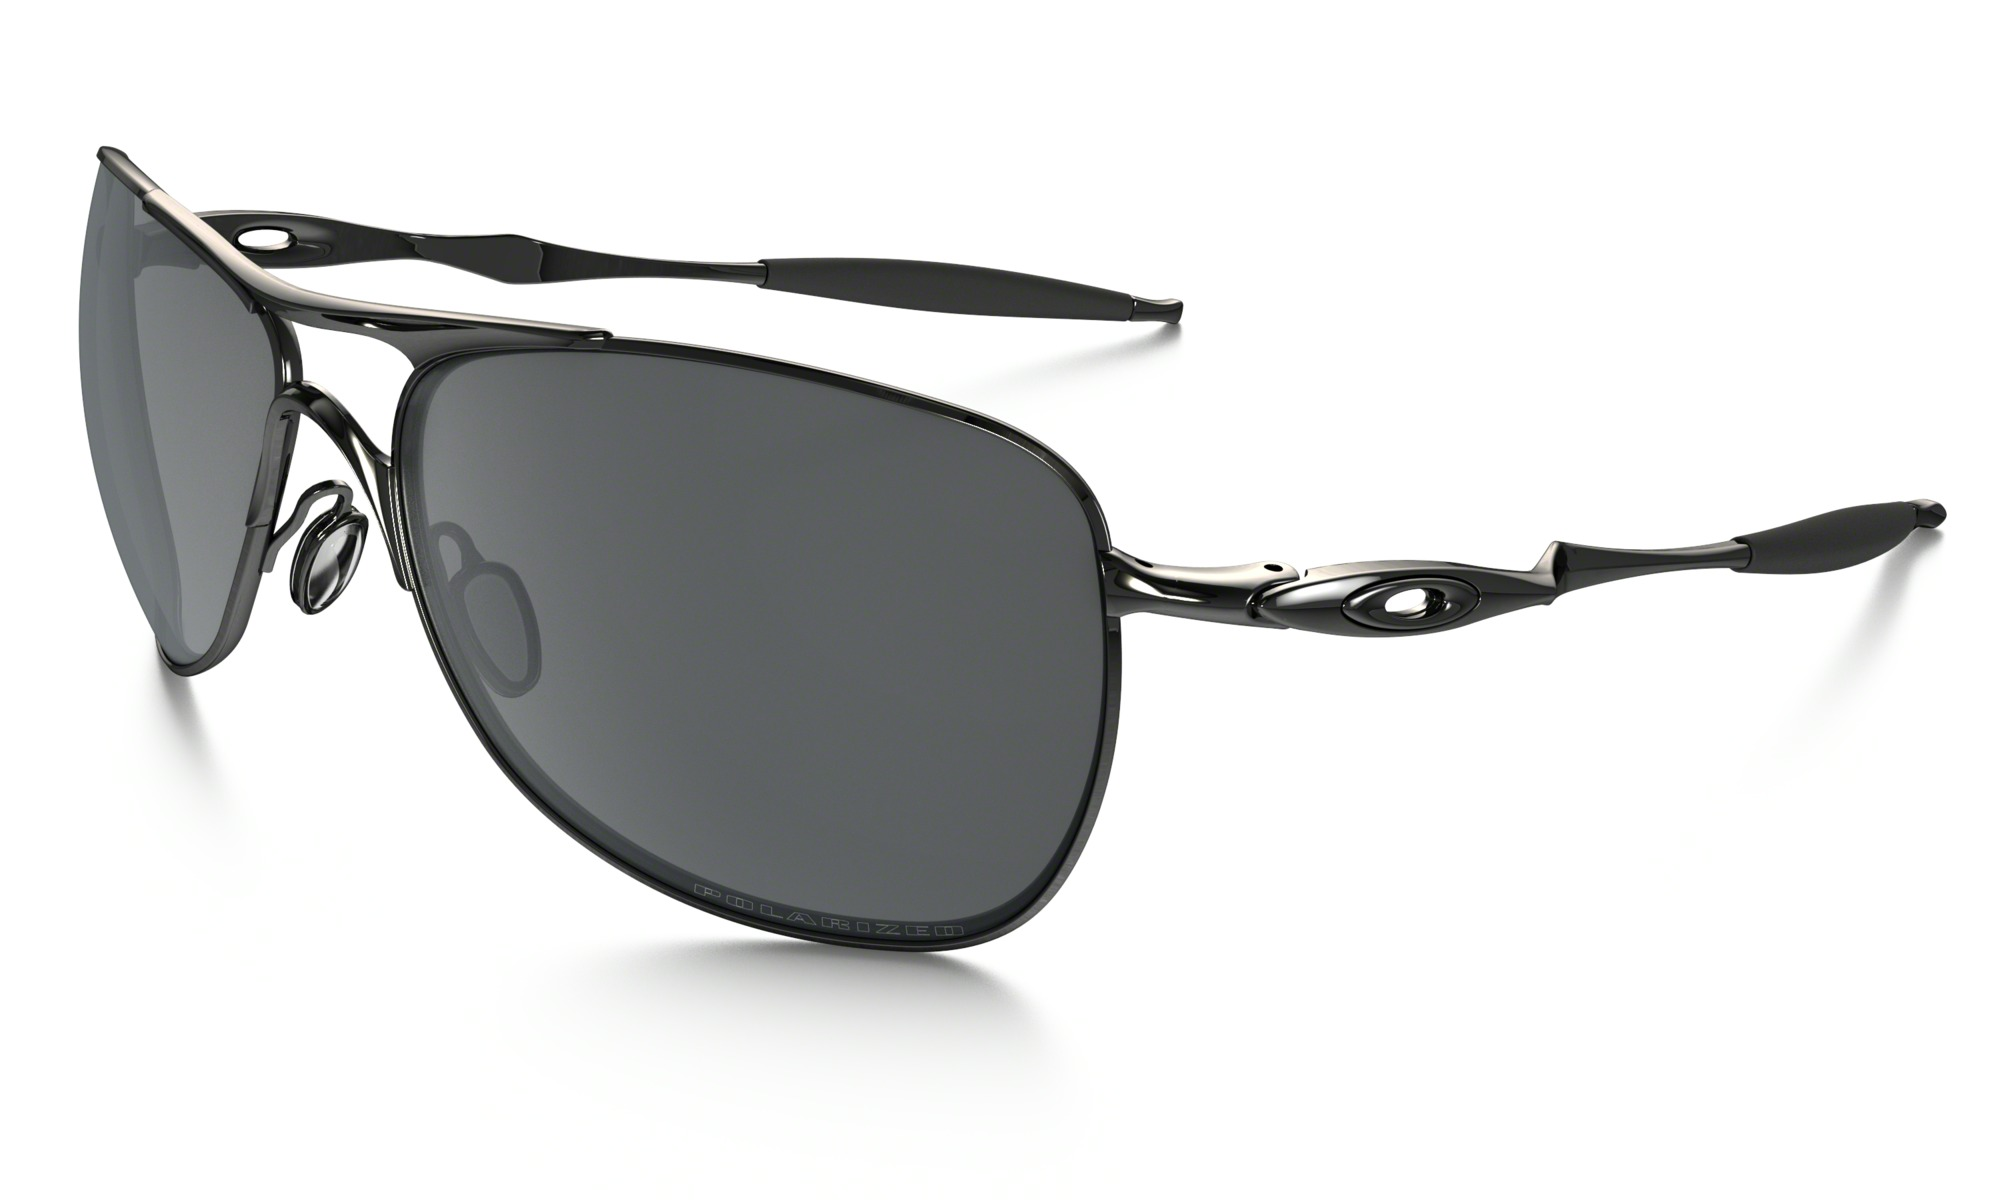 oakley shades price  Oakley Sunglasses Price - Ficts